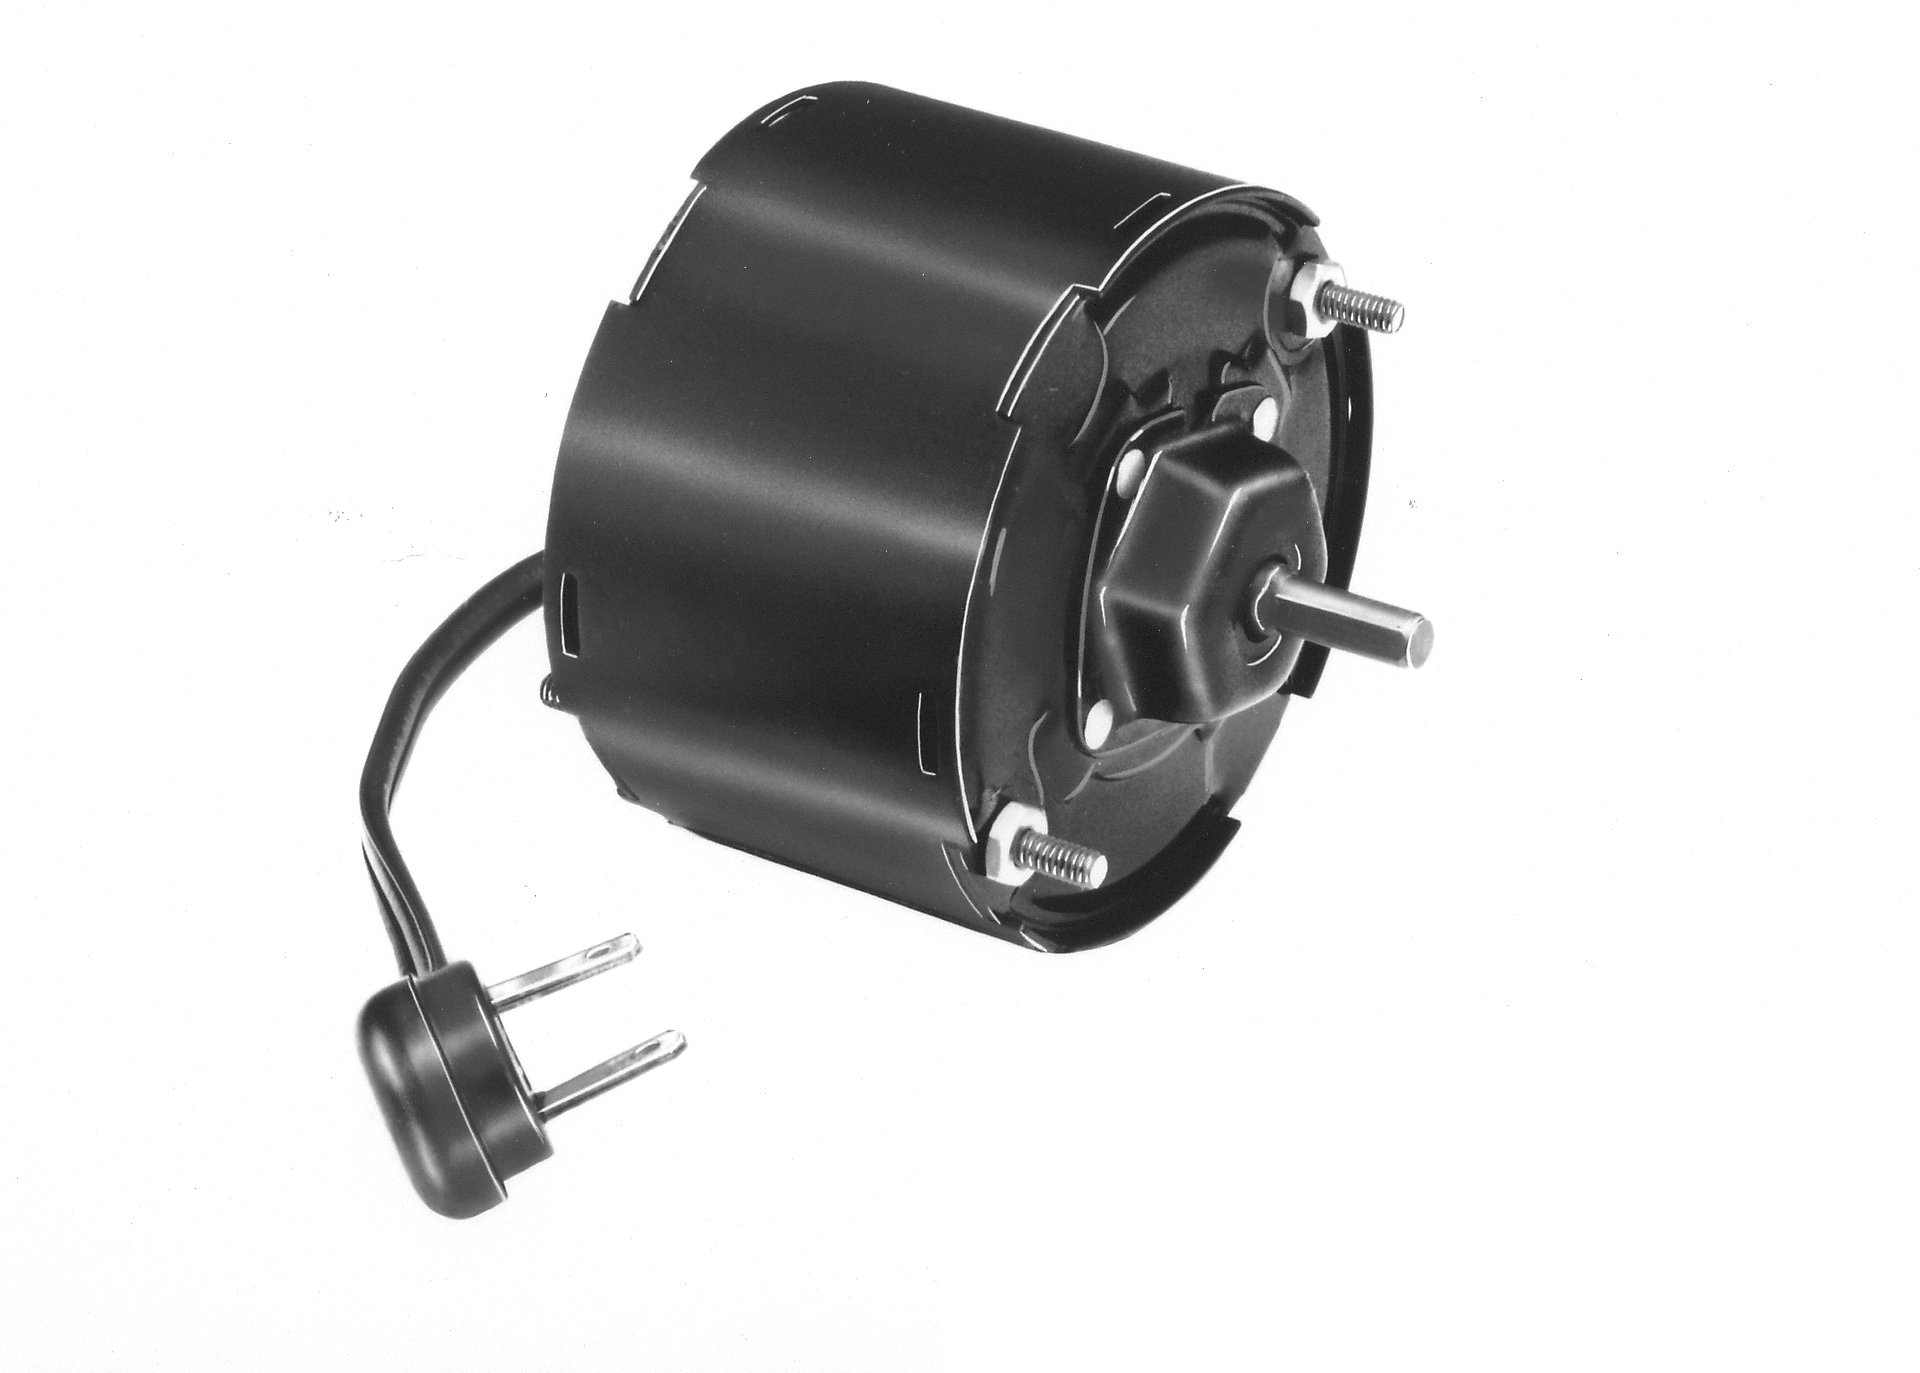 Fasco D1109 3.3'' Frame Totally Enclosed Shaded Pole General Purpose Motor withSleeve Bearing, 1/100HP, 1500rpm, 115V, 60Hz, 0.65 amps